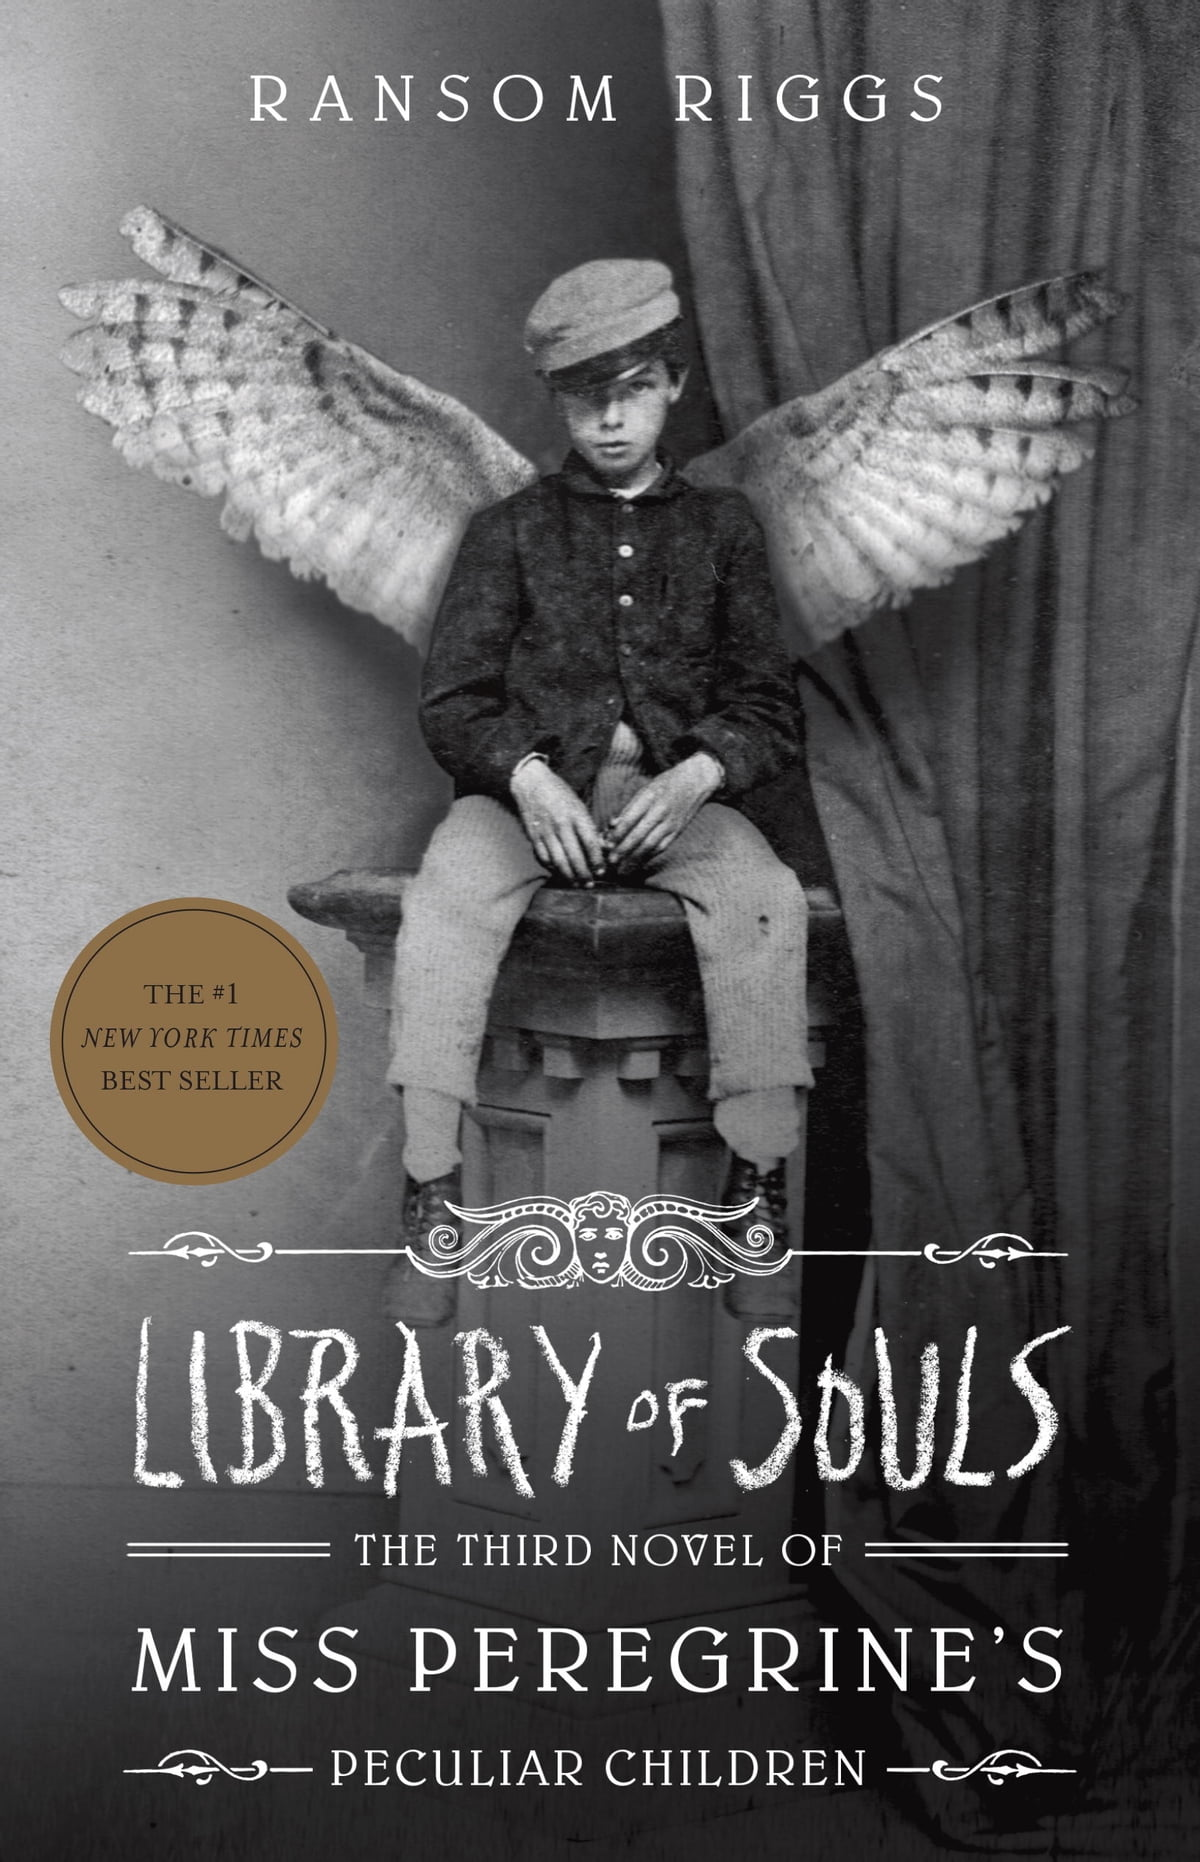 Library Of Souls  The Third Novel Of Miss Peregrine's Peculiar Children  Ebook By Ransom Riggs